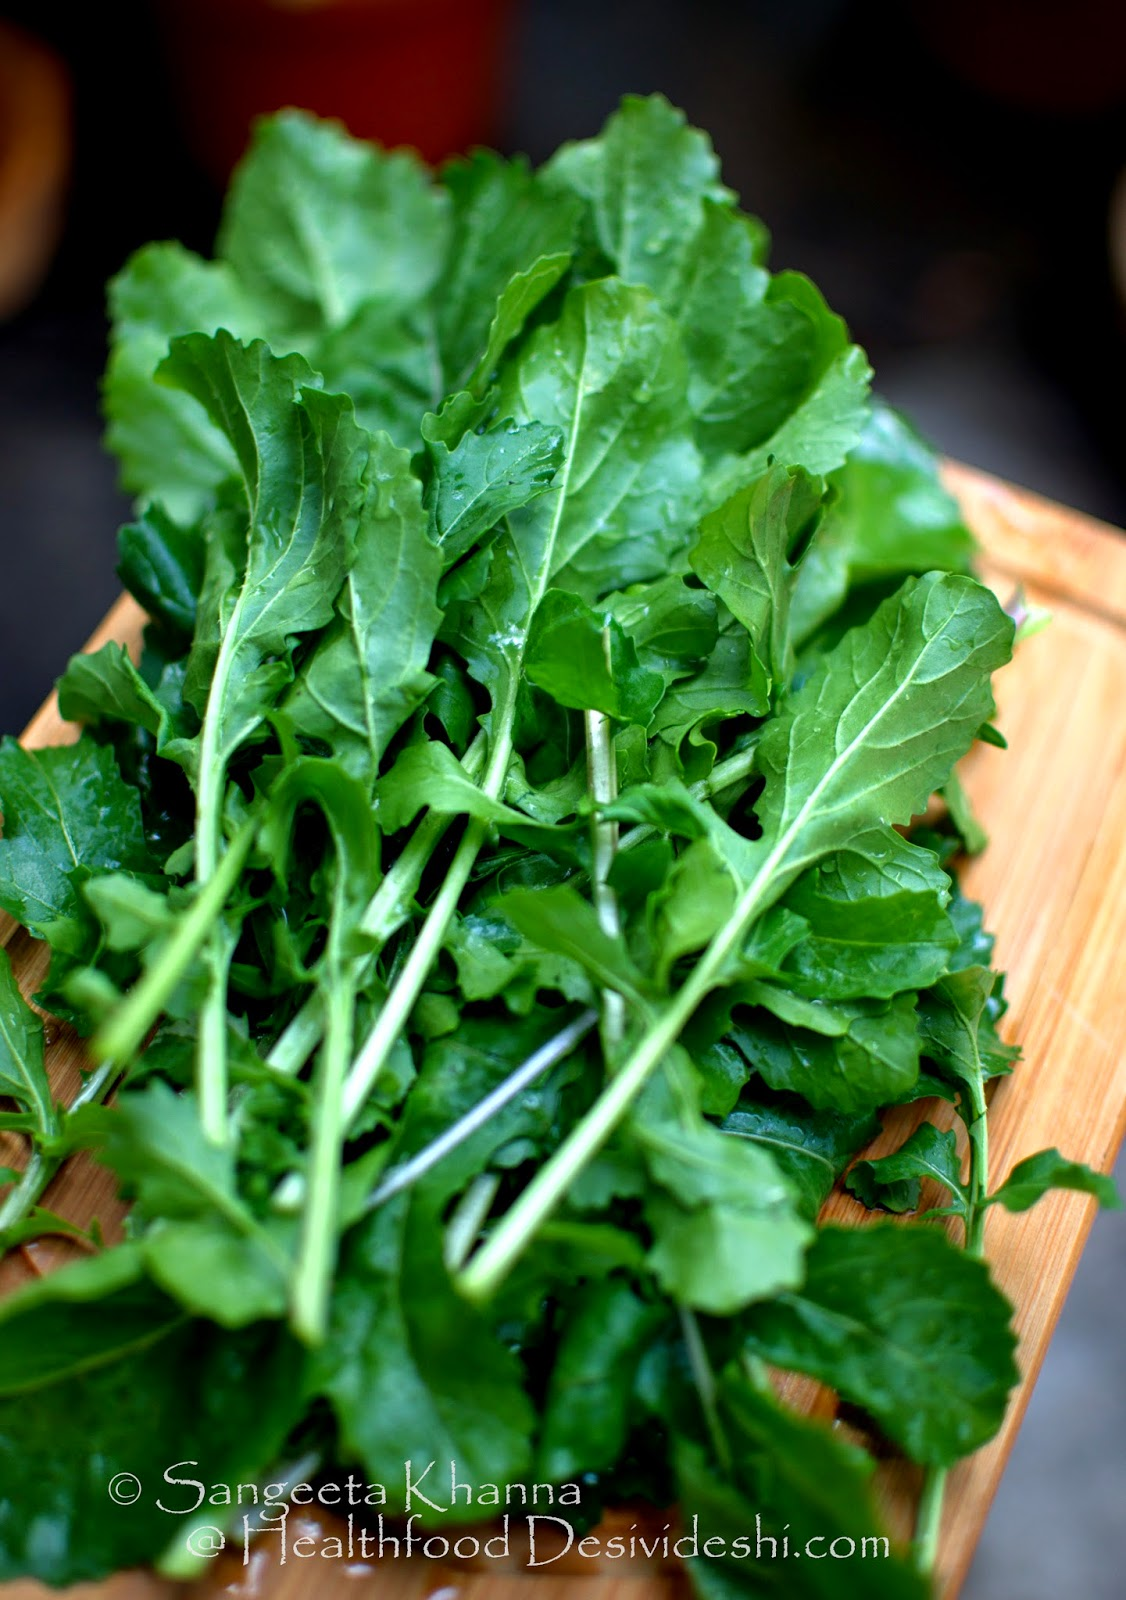 Are arugula and rucola different? Know more about the rocket greens...